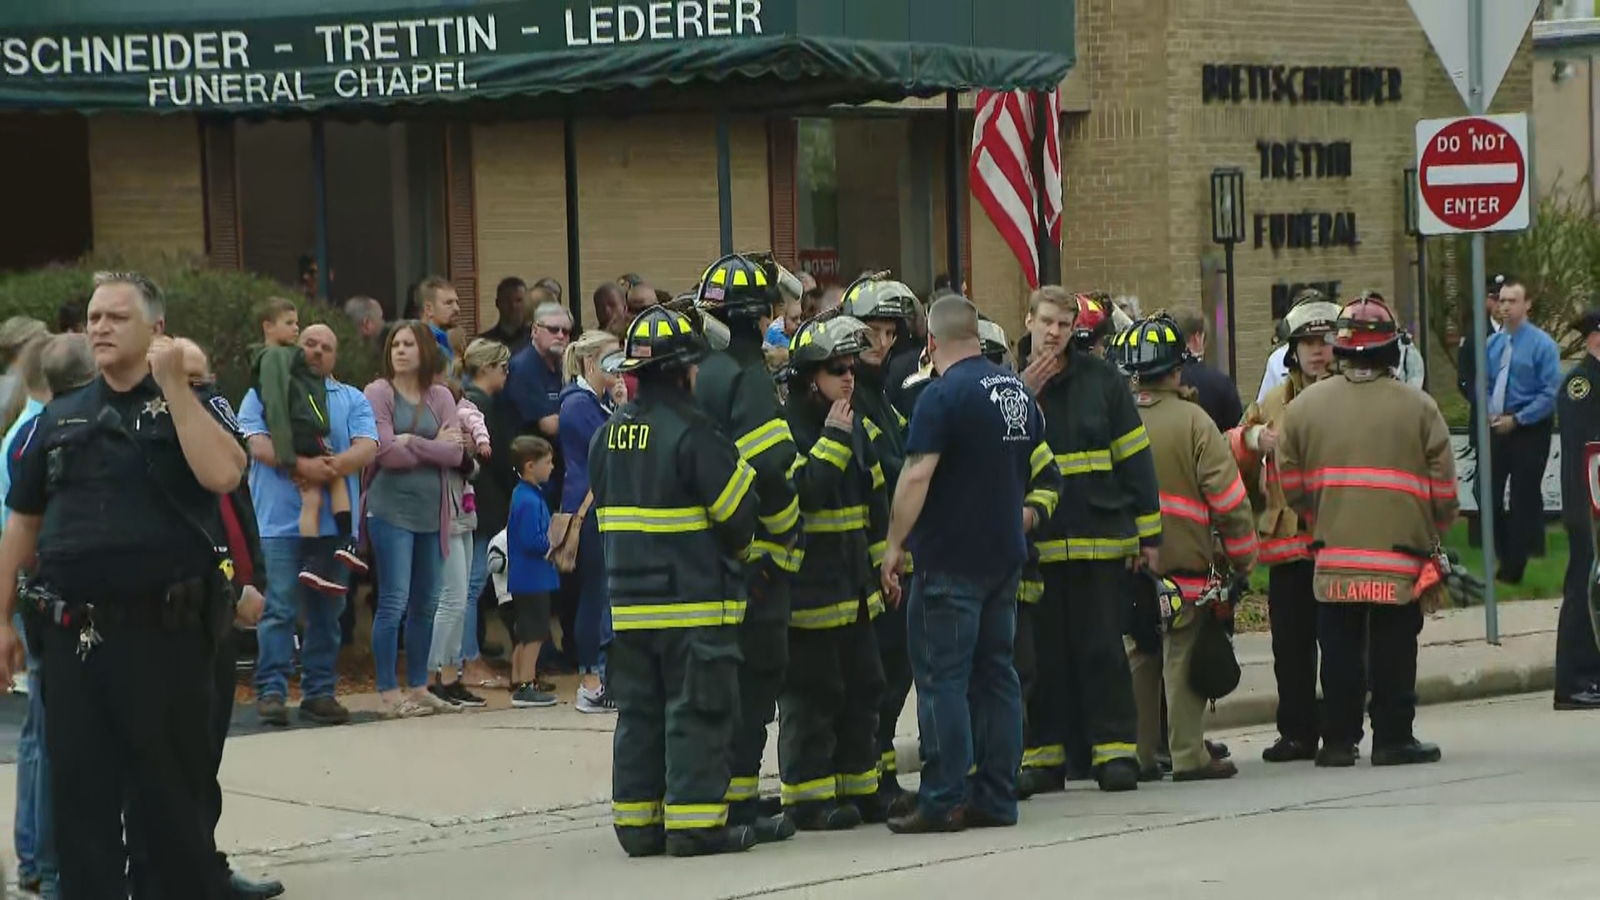 Firefighters and community members pay respects to the body of a fallen Appleton firefighter at the Brettschneider-Trettin-Nickel Funeral Chapel in Appleton, May 16, 2019. (WLUK)